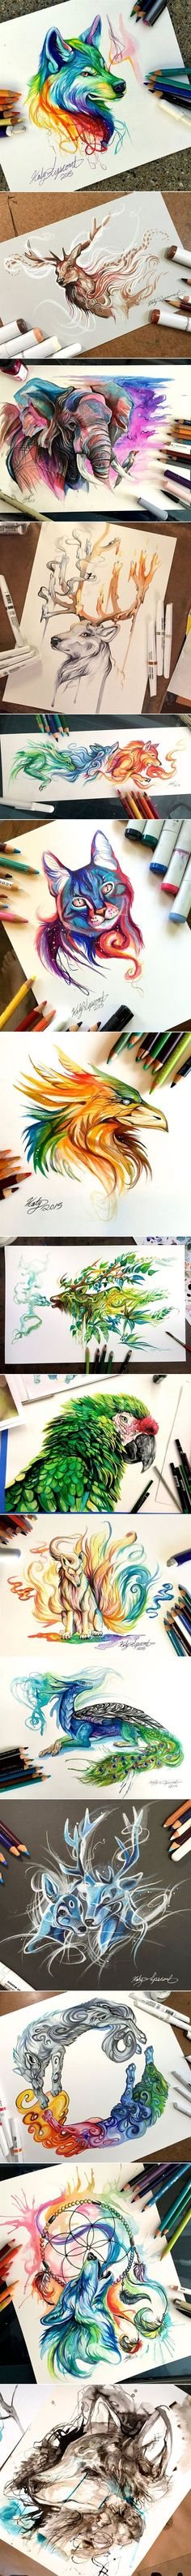 Week of 3/27 These pictures of the different animals are all very unique and different. I love how the lines twirl and wisp on the paper. Those lines help the animal come to life on the page.